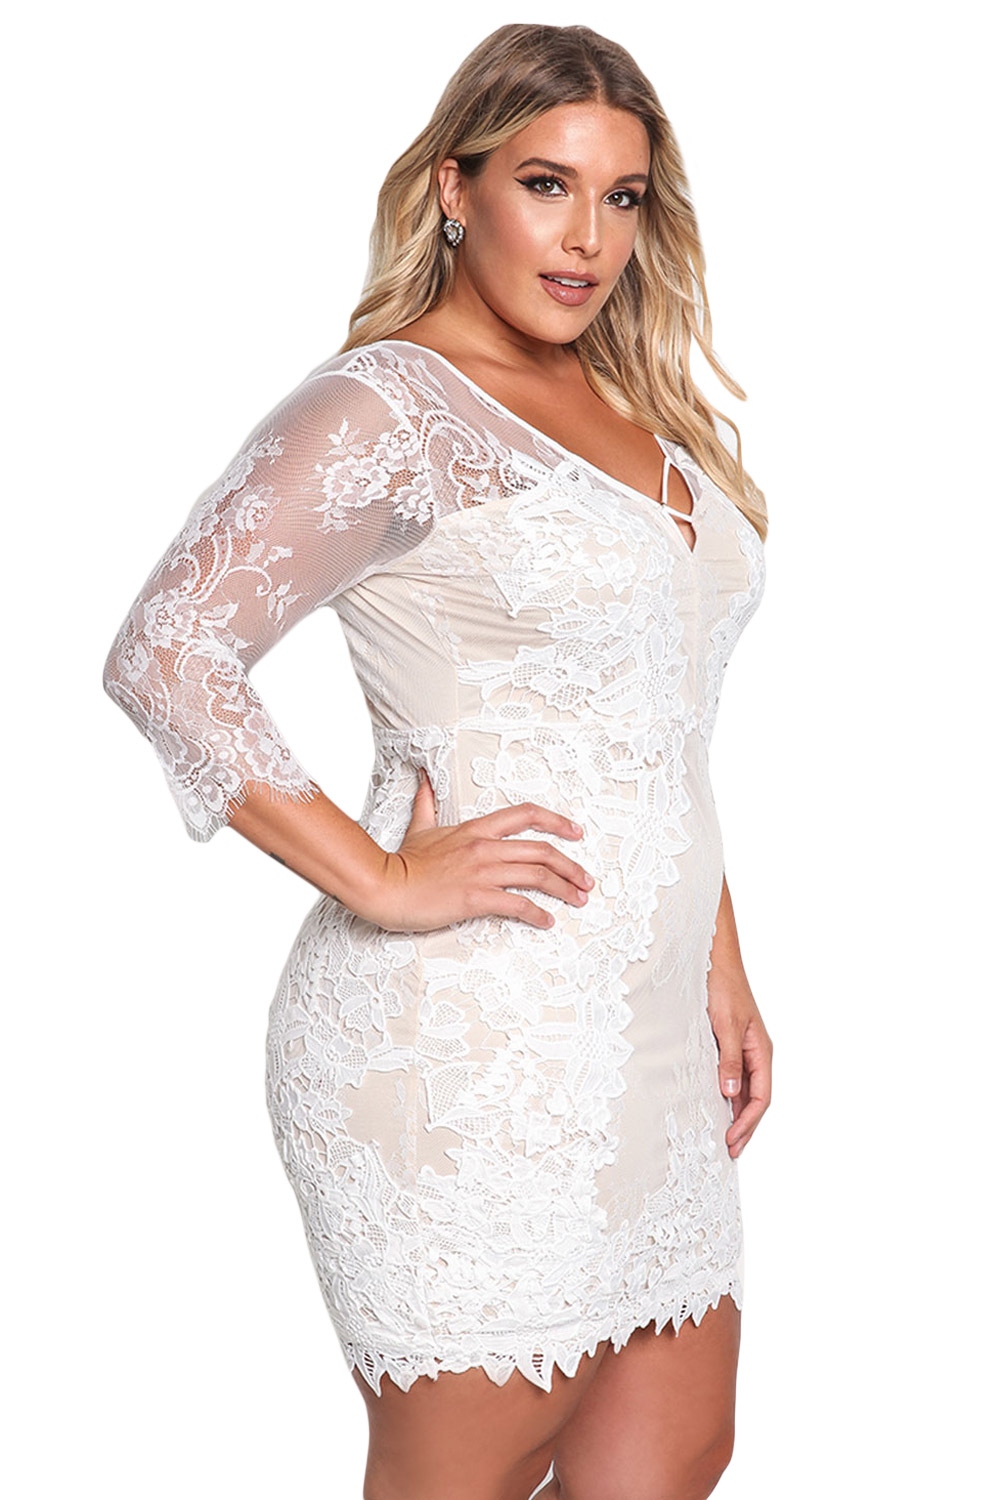 BY220134-1 White Plus Size Floral Lace Embroidered Dress